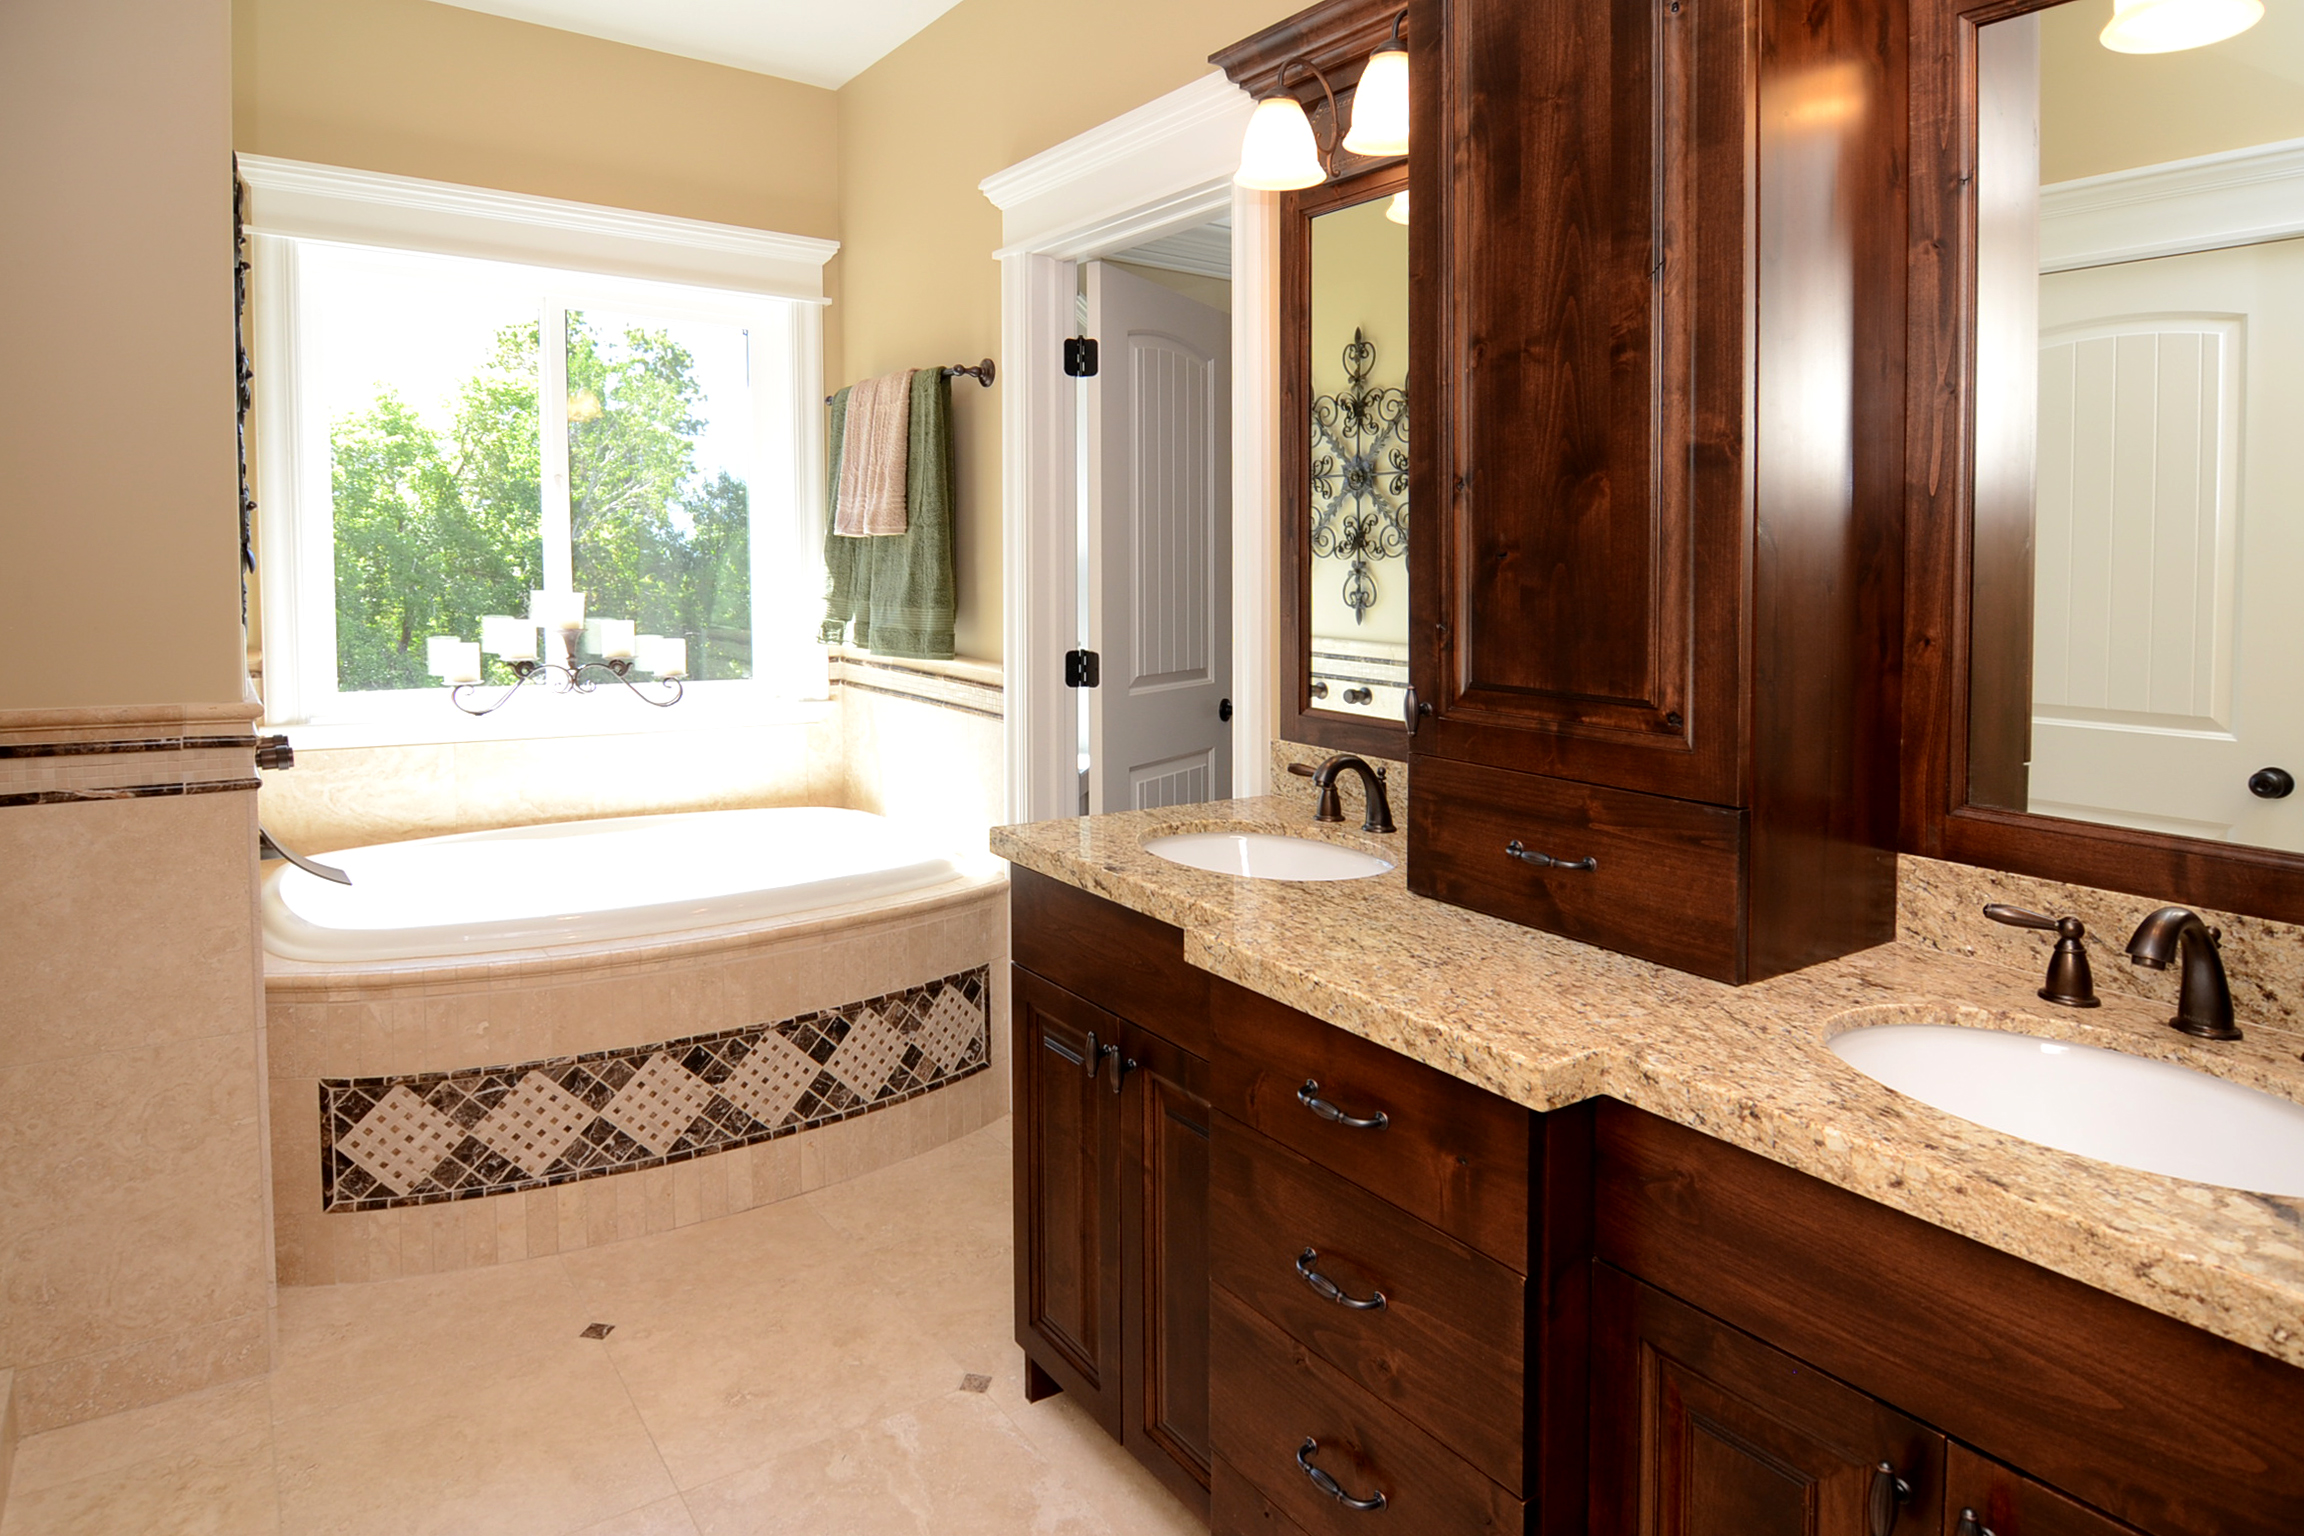 Bathroom Remodel Refinished Bathroom Vanities New Glass And Tile